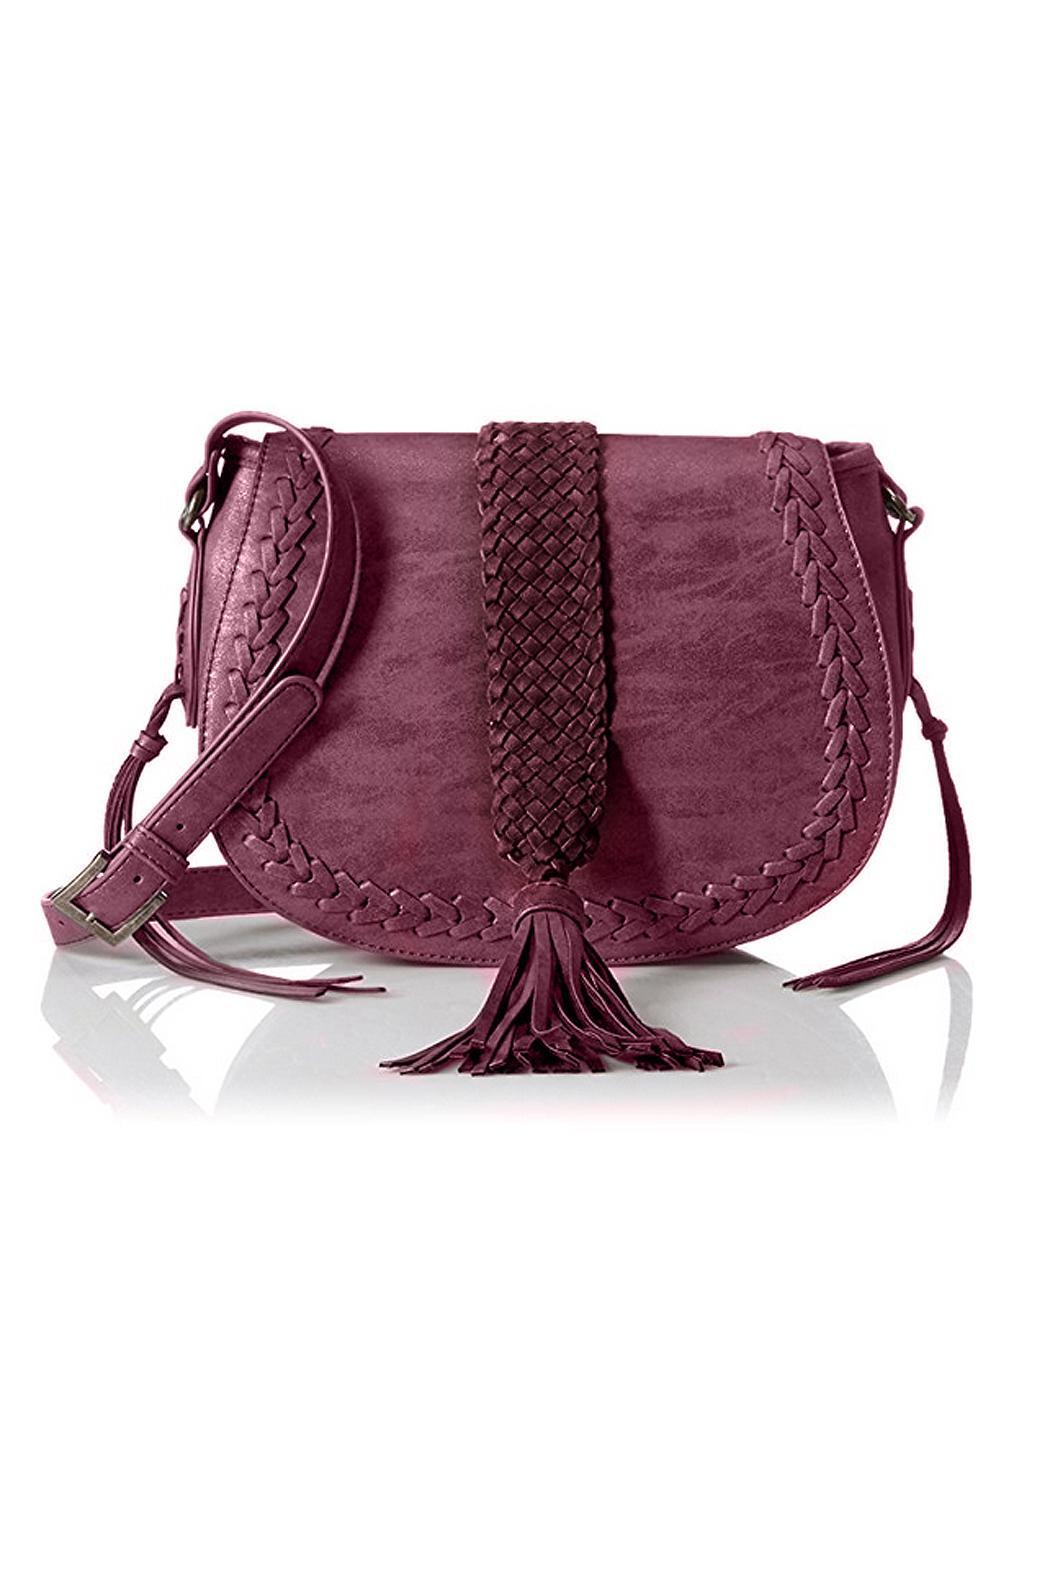 23d1a6ac7a Steven By Steve Madden Leather Purse - Best Purse Image Ccdbb.Org